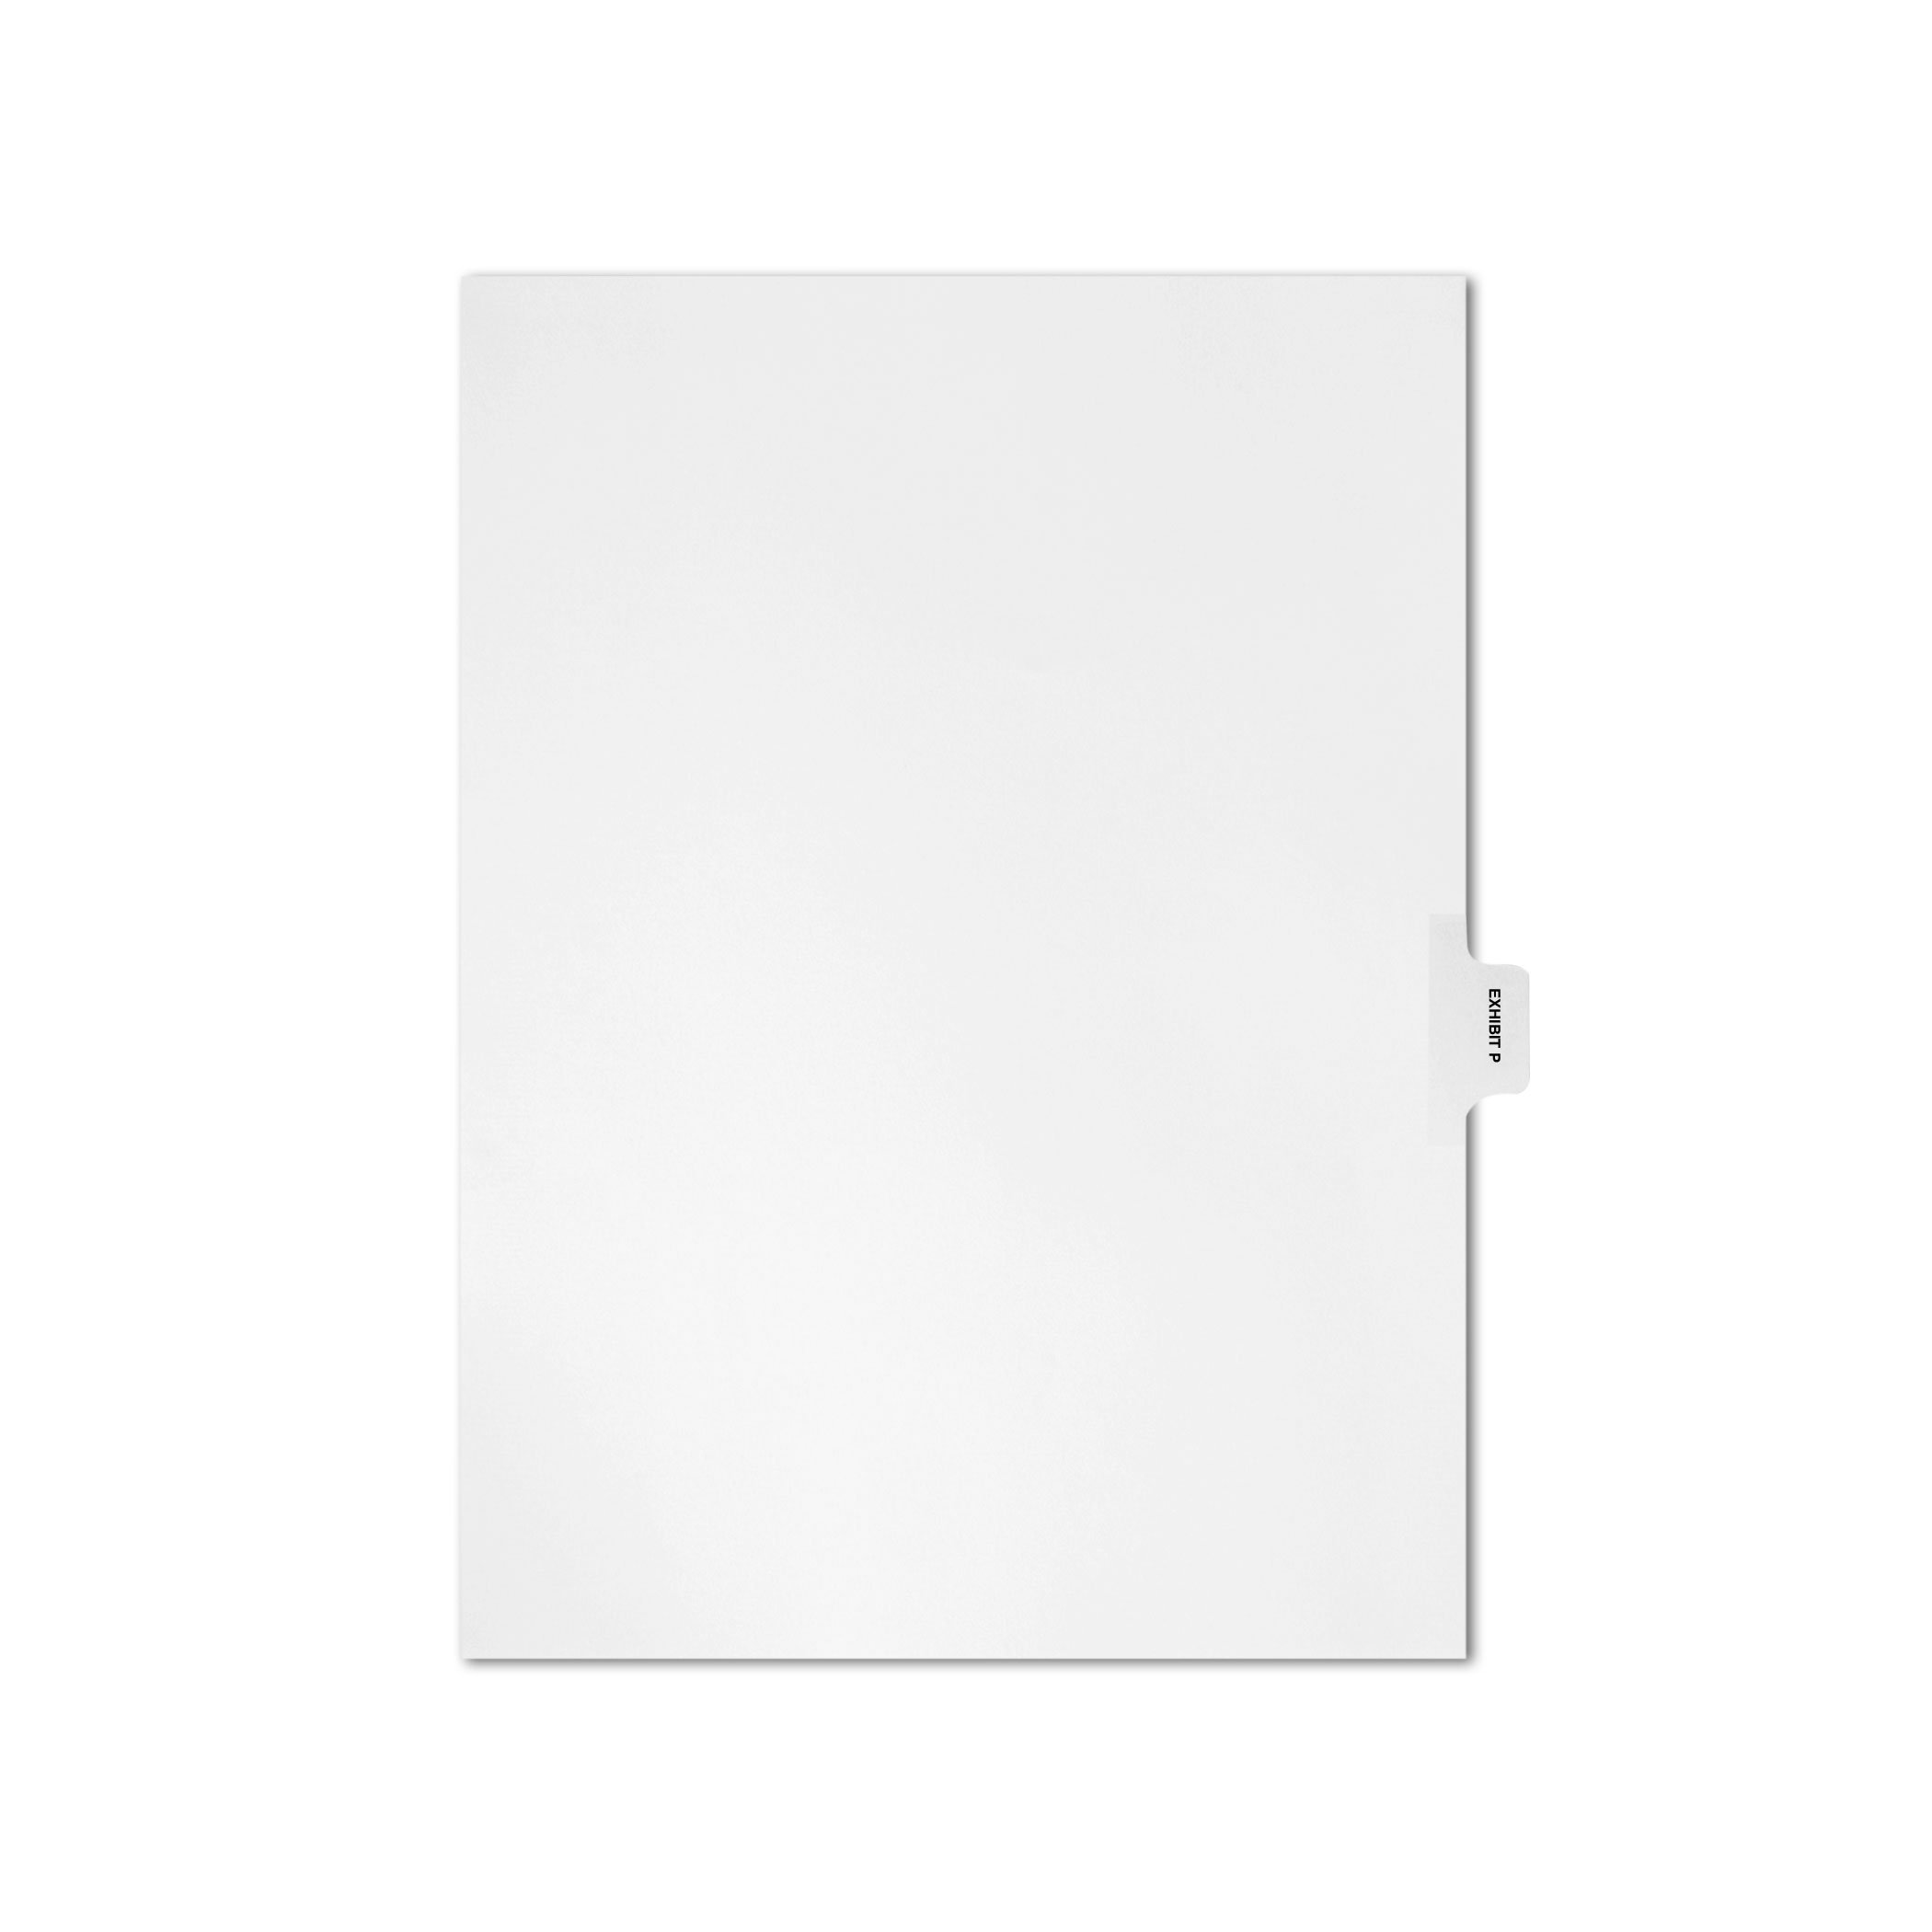 AMZfiling Individual Legal Index Tab Dividers, Compatible with Avery- Exhibit P, Side Tabs, Letter Size, White, Position 6 (25 Sheets/pkg)